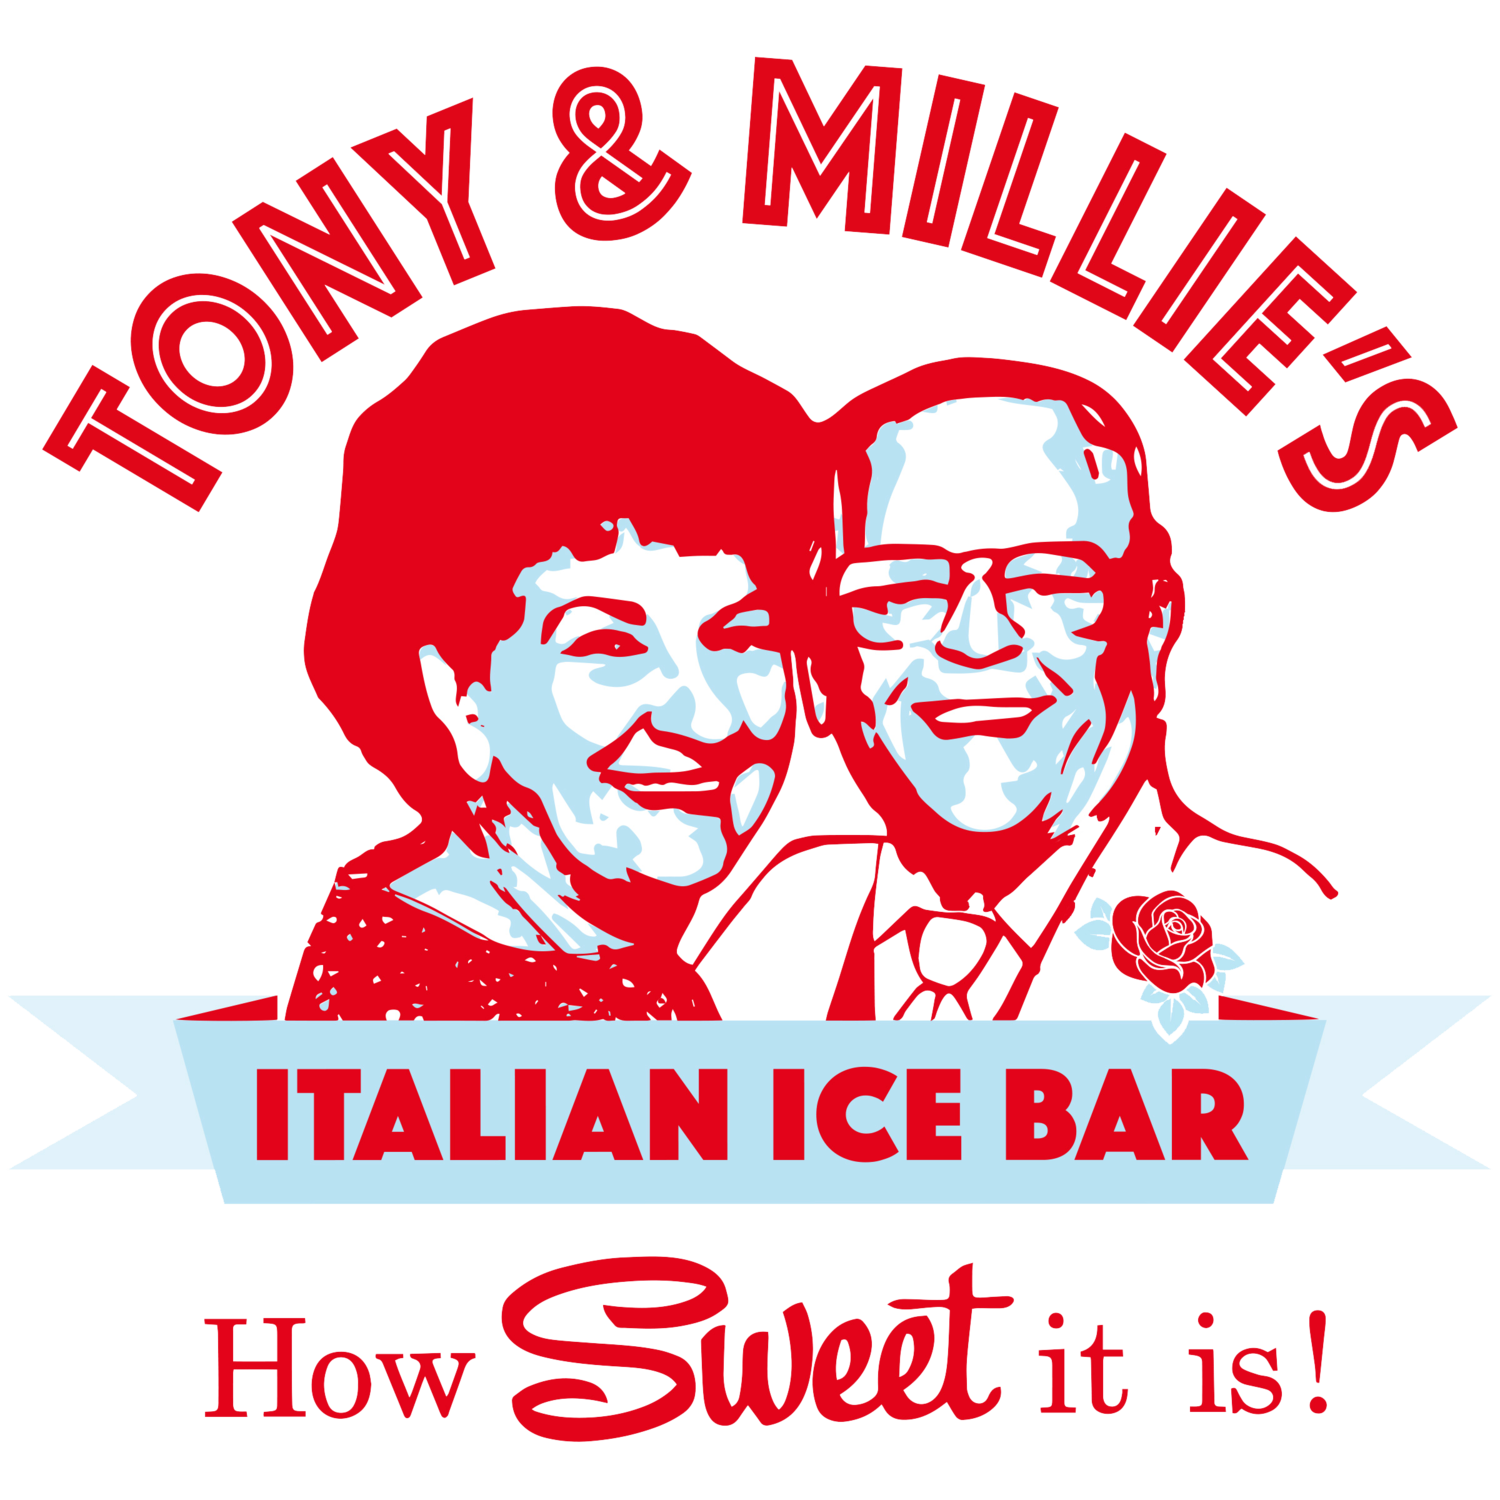 Tony and Millie's